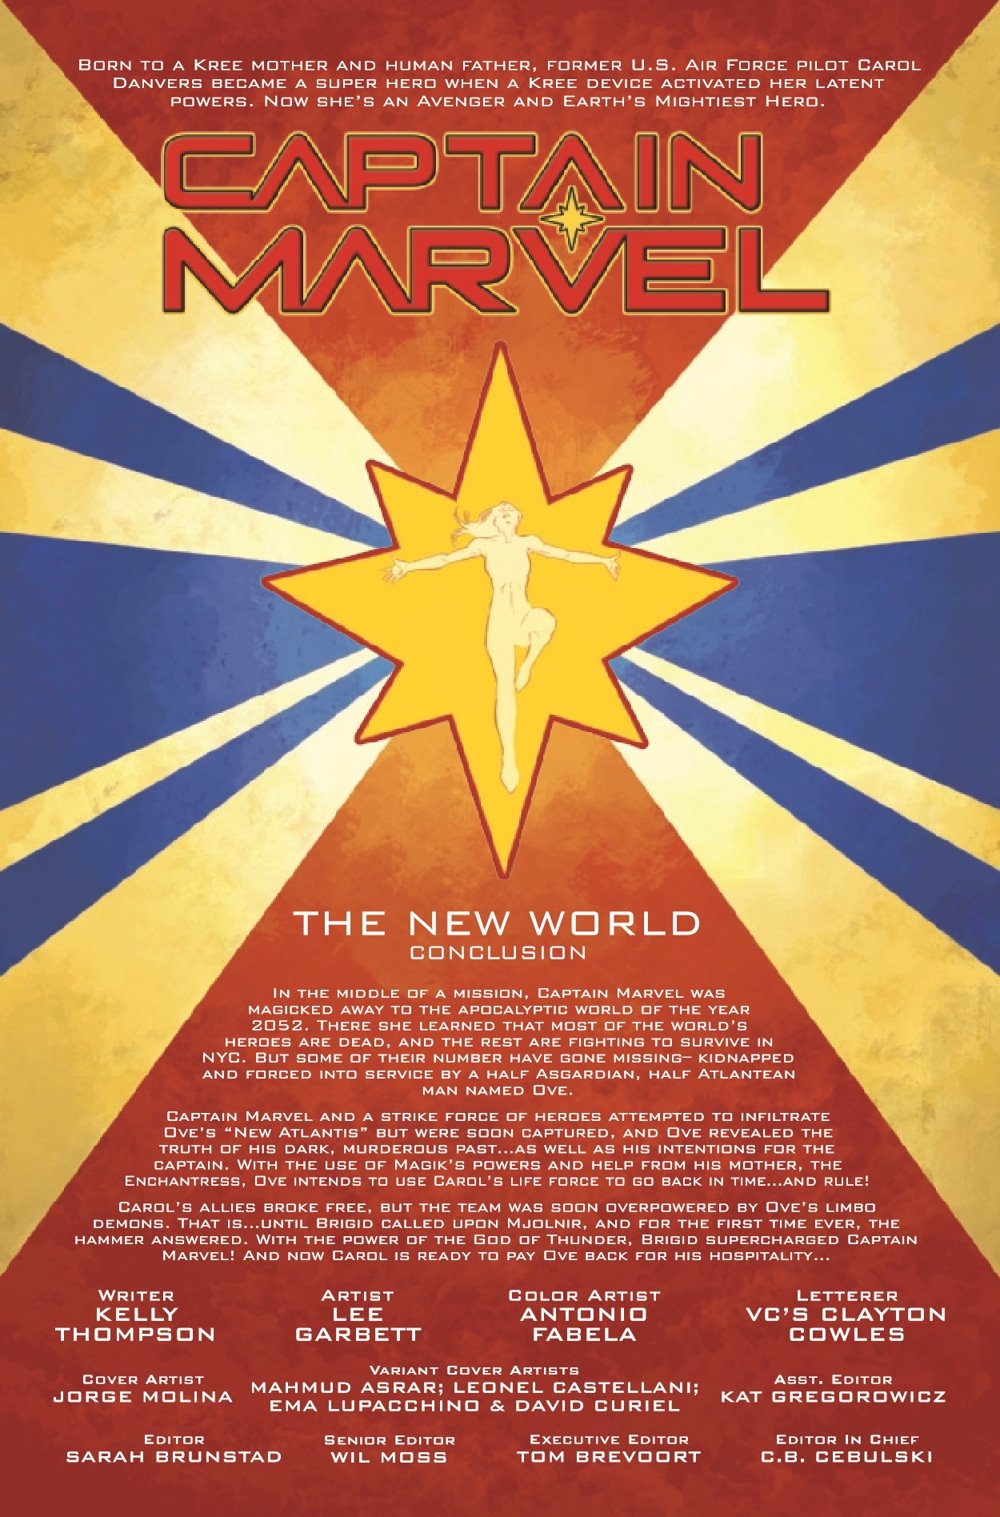 CAPMARV2019026_Preview-2 ComicList Previews: CAPTAIN MARVEL #26